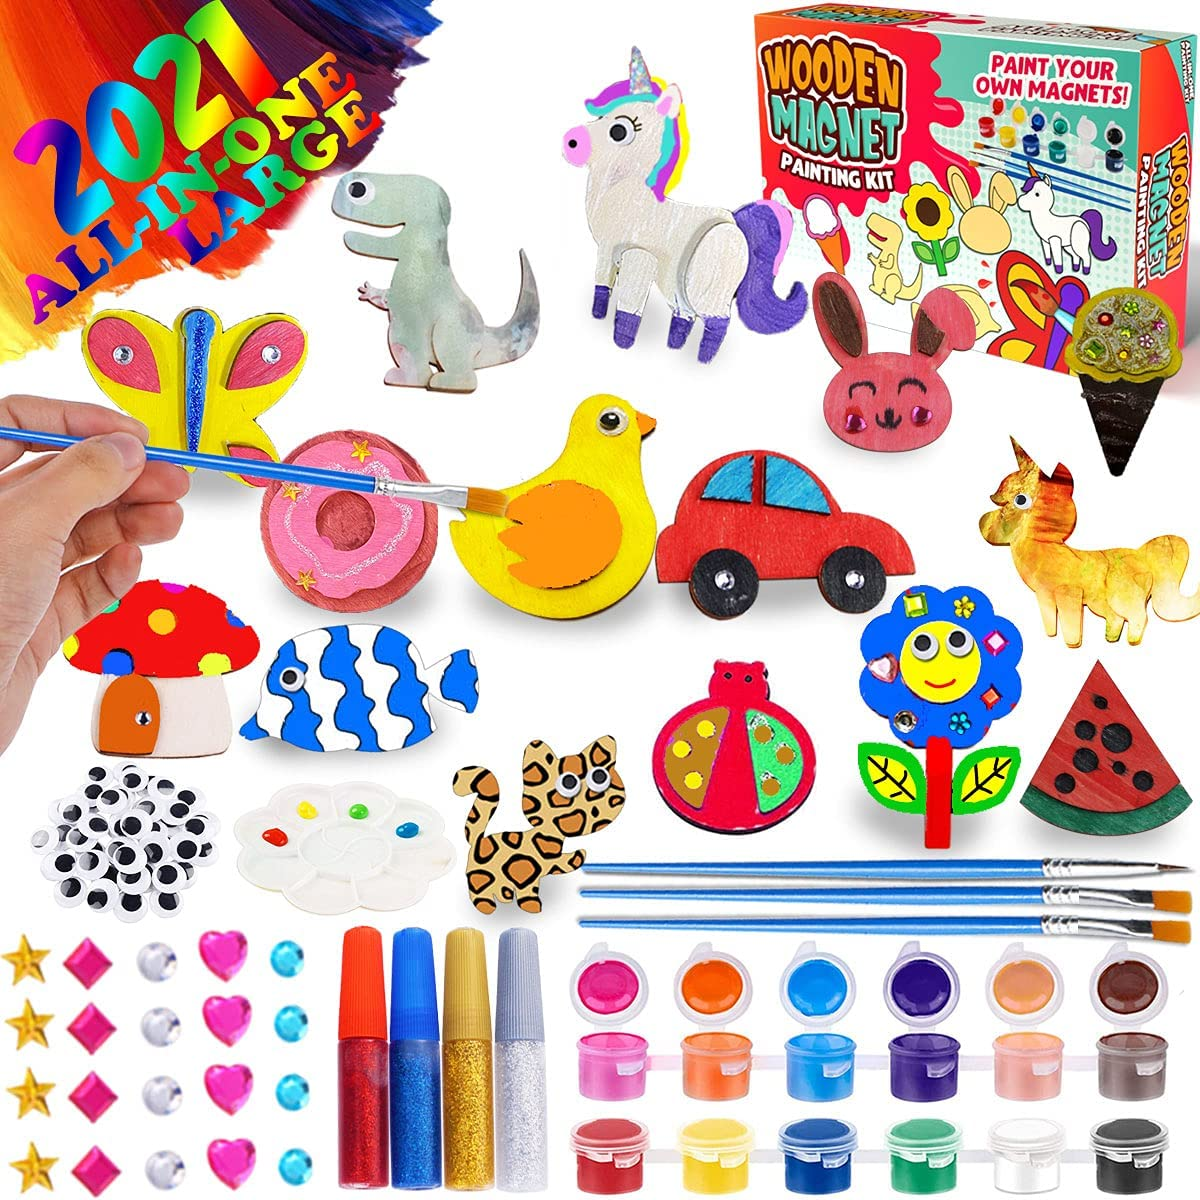 Goodyking Arts and Craft Painting Woden Magnet - Kids Wood Craft Painting Activities for Boys Girls Age 3 4 5 6 7 8-12 Years Old DIY School Family Creative Supplies Gift Decoration Home Decor